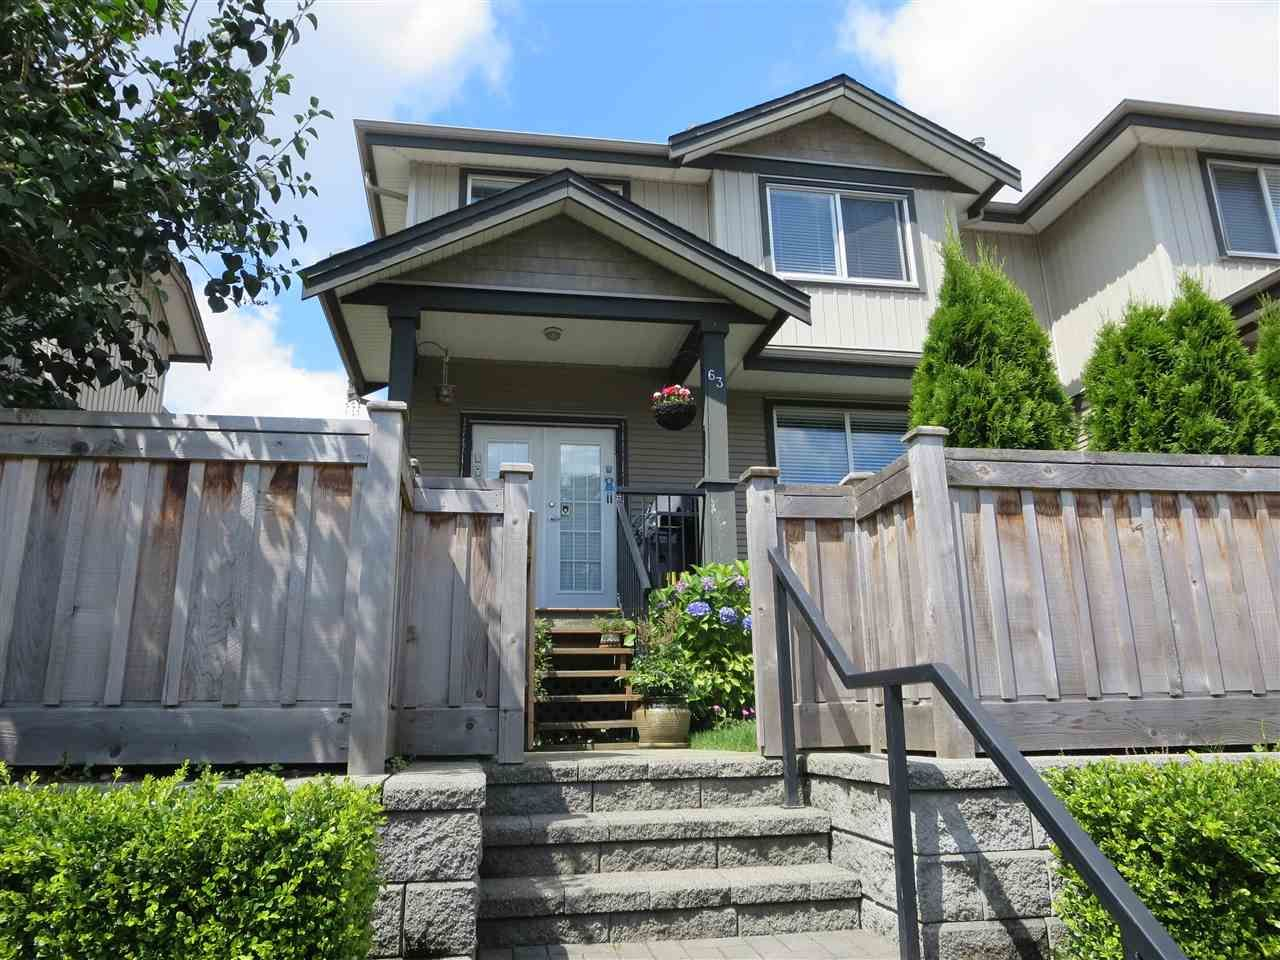 Walk into your new home from the street into your private fenced front yard.